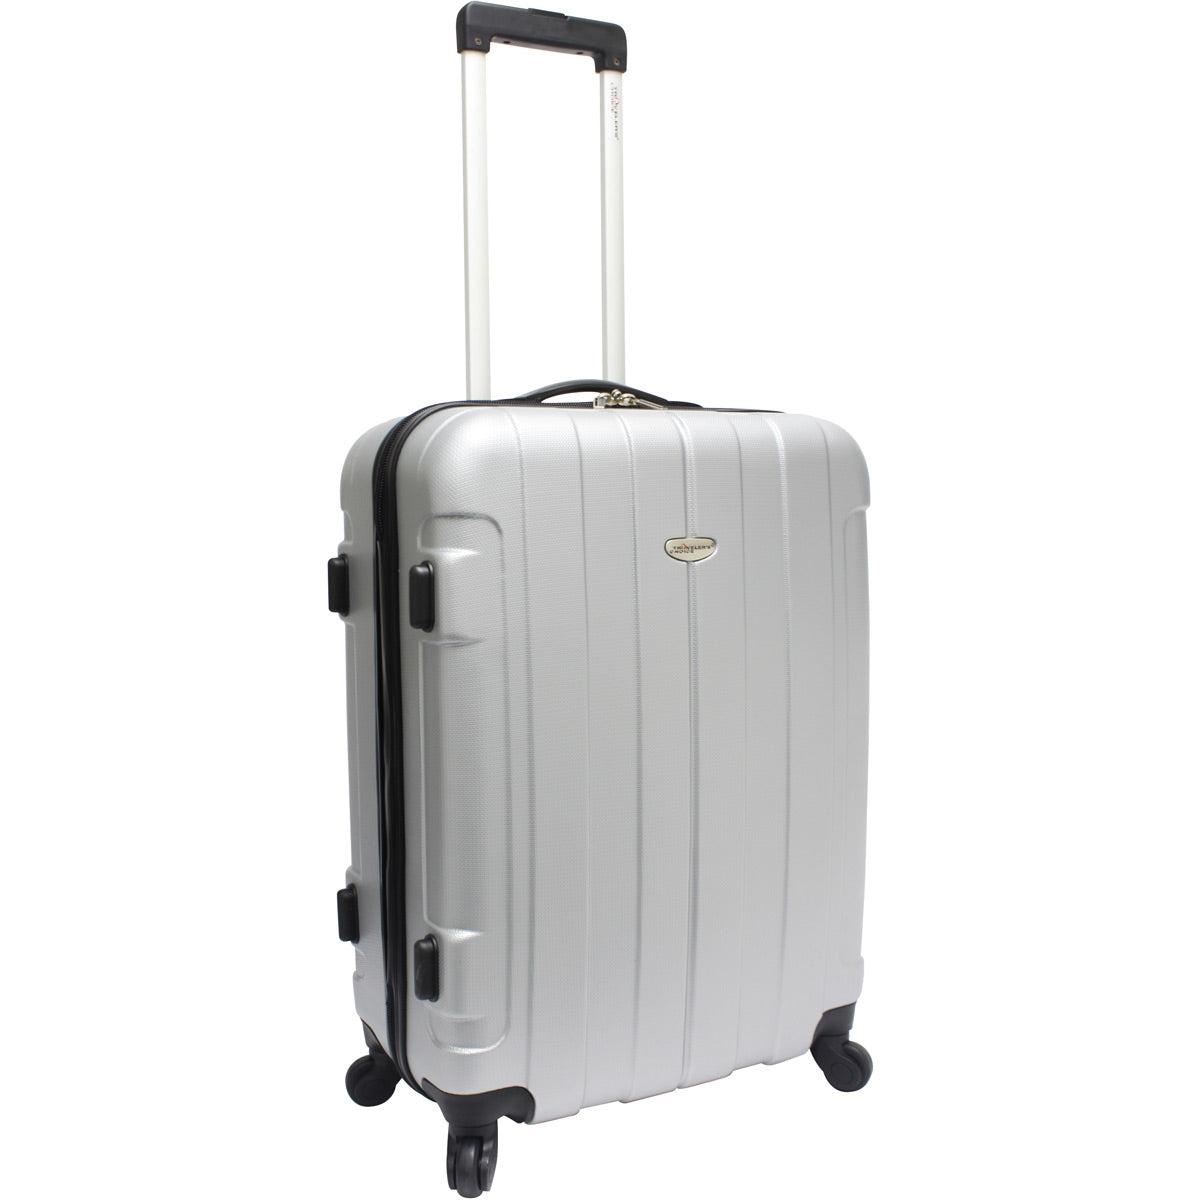 Traveler's Choice Rome 25in Hardside Spinner Upright